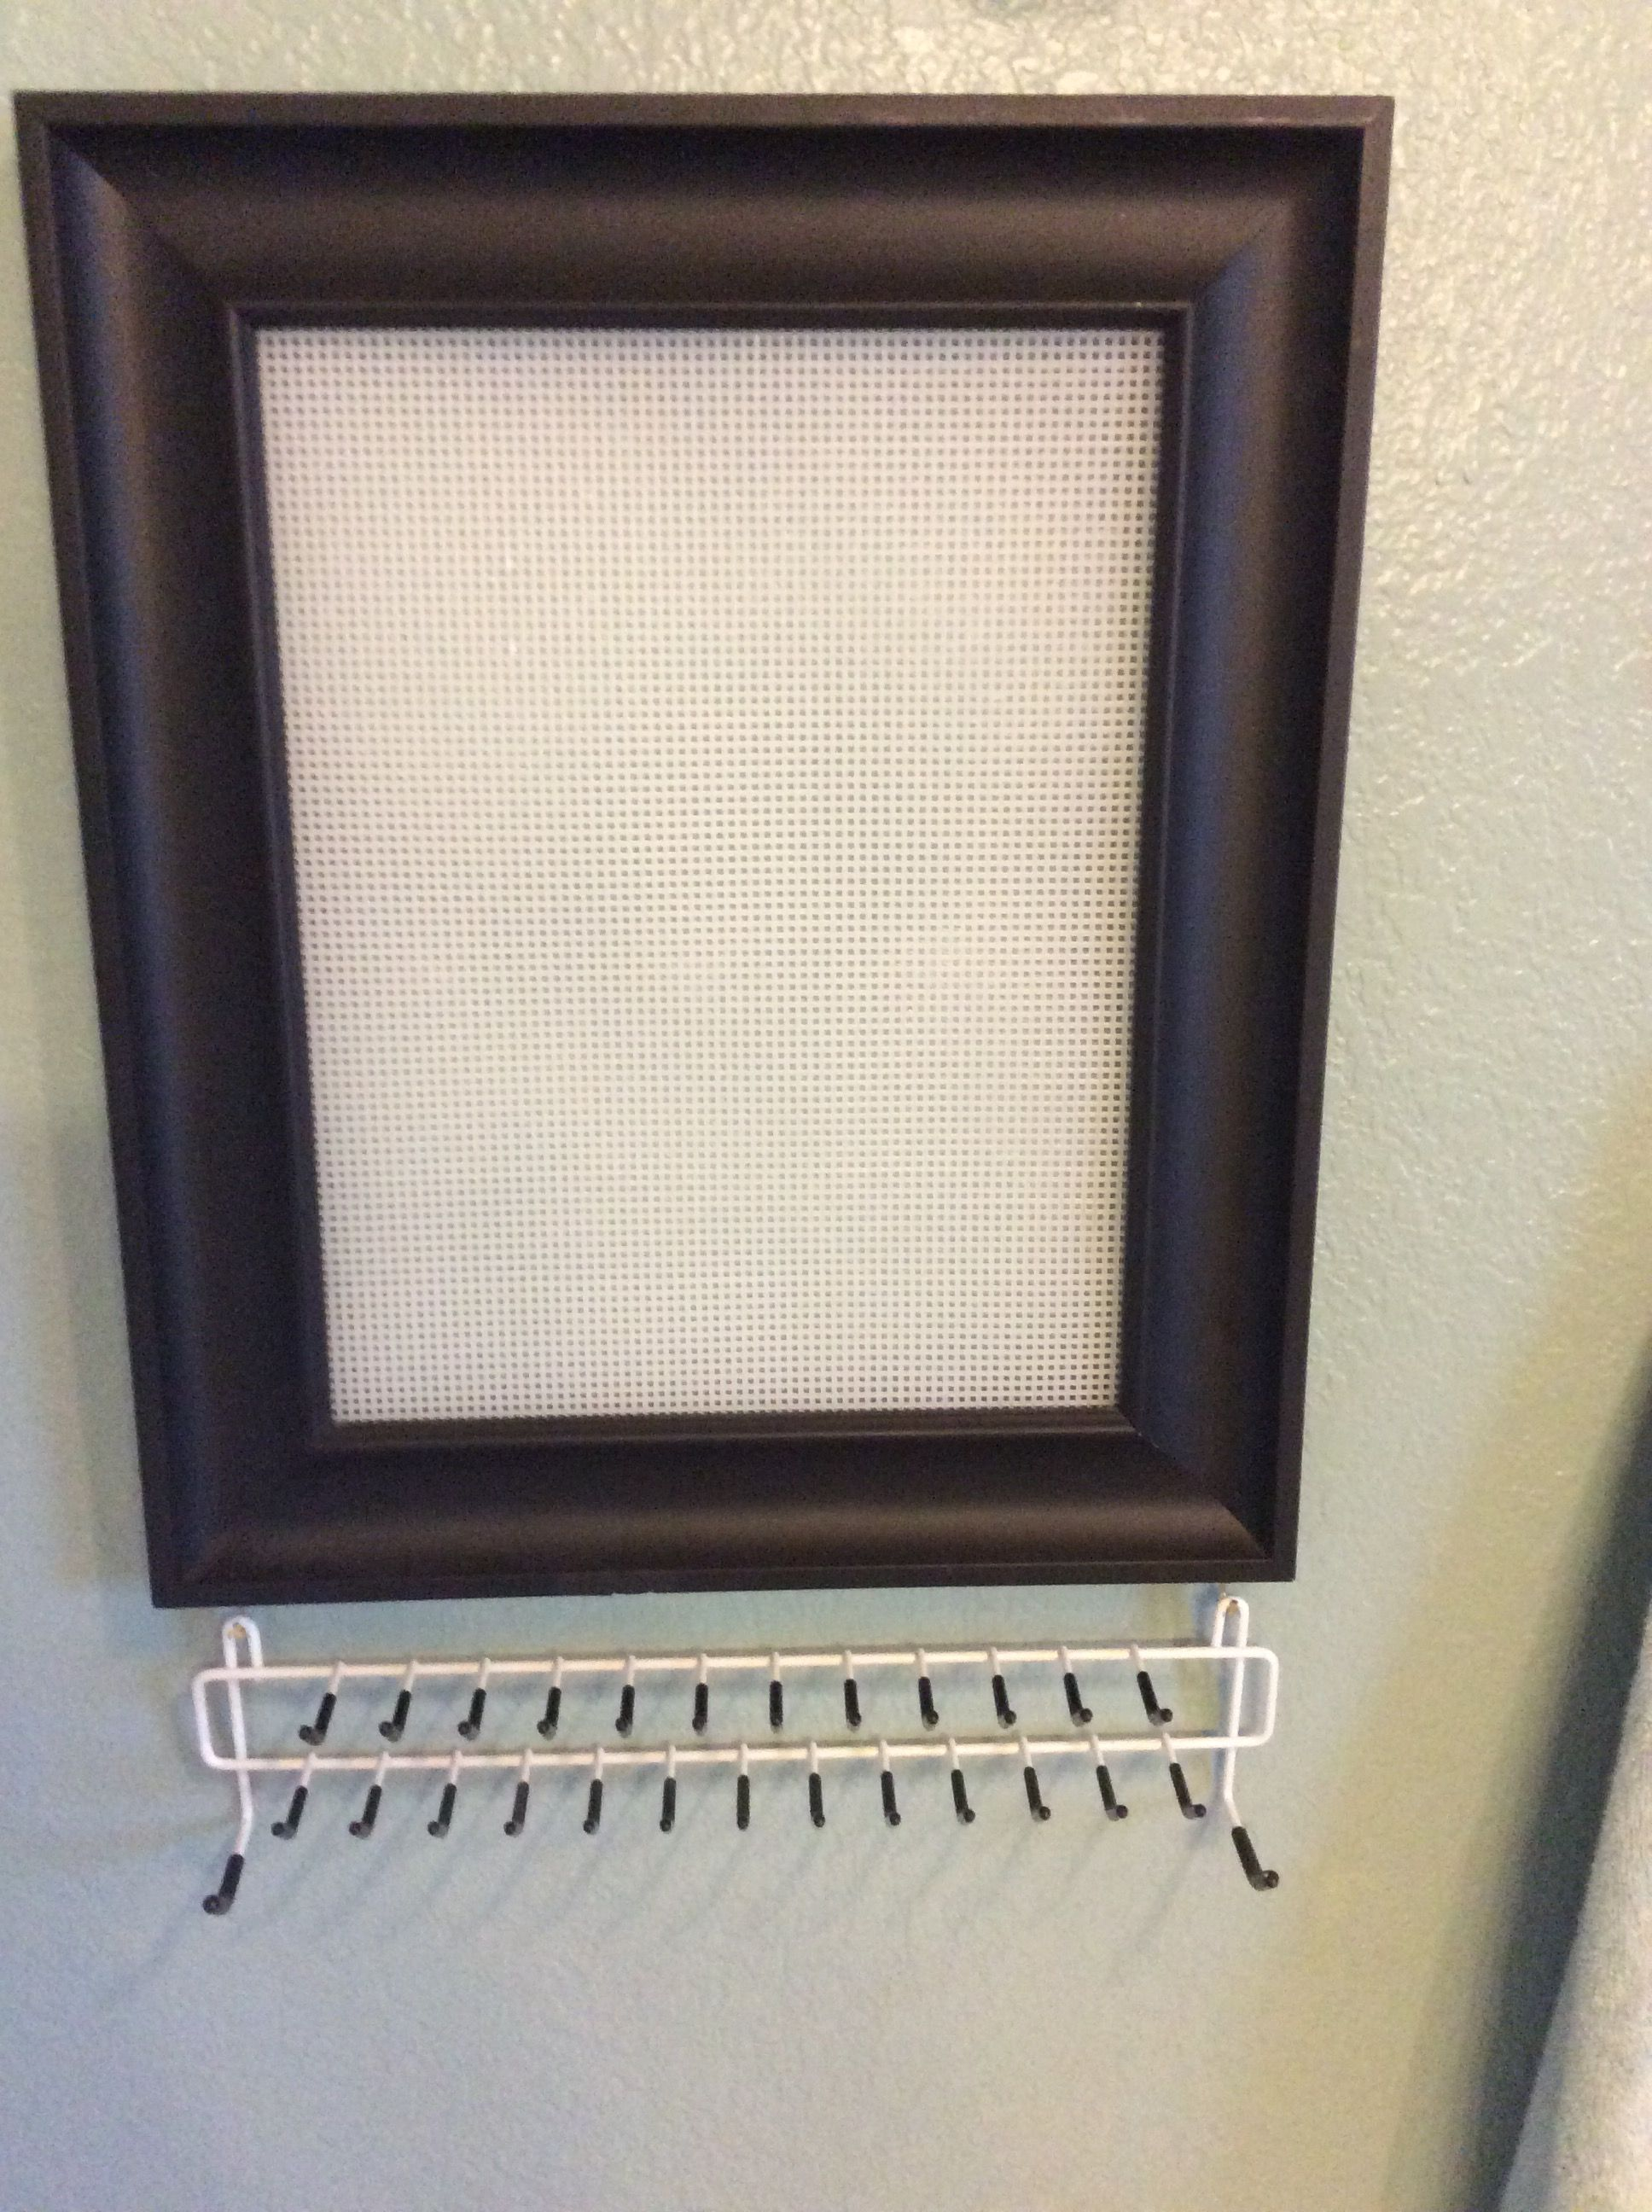 Jewelry organizer made using a plastic needlepoint canvas you can